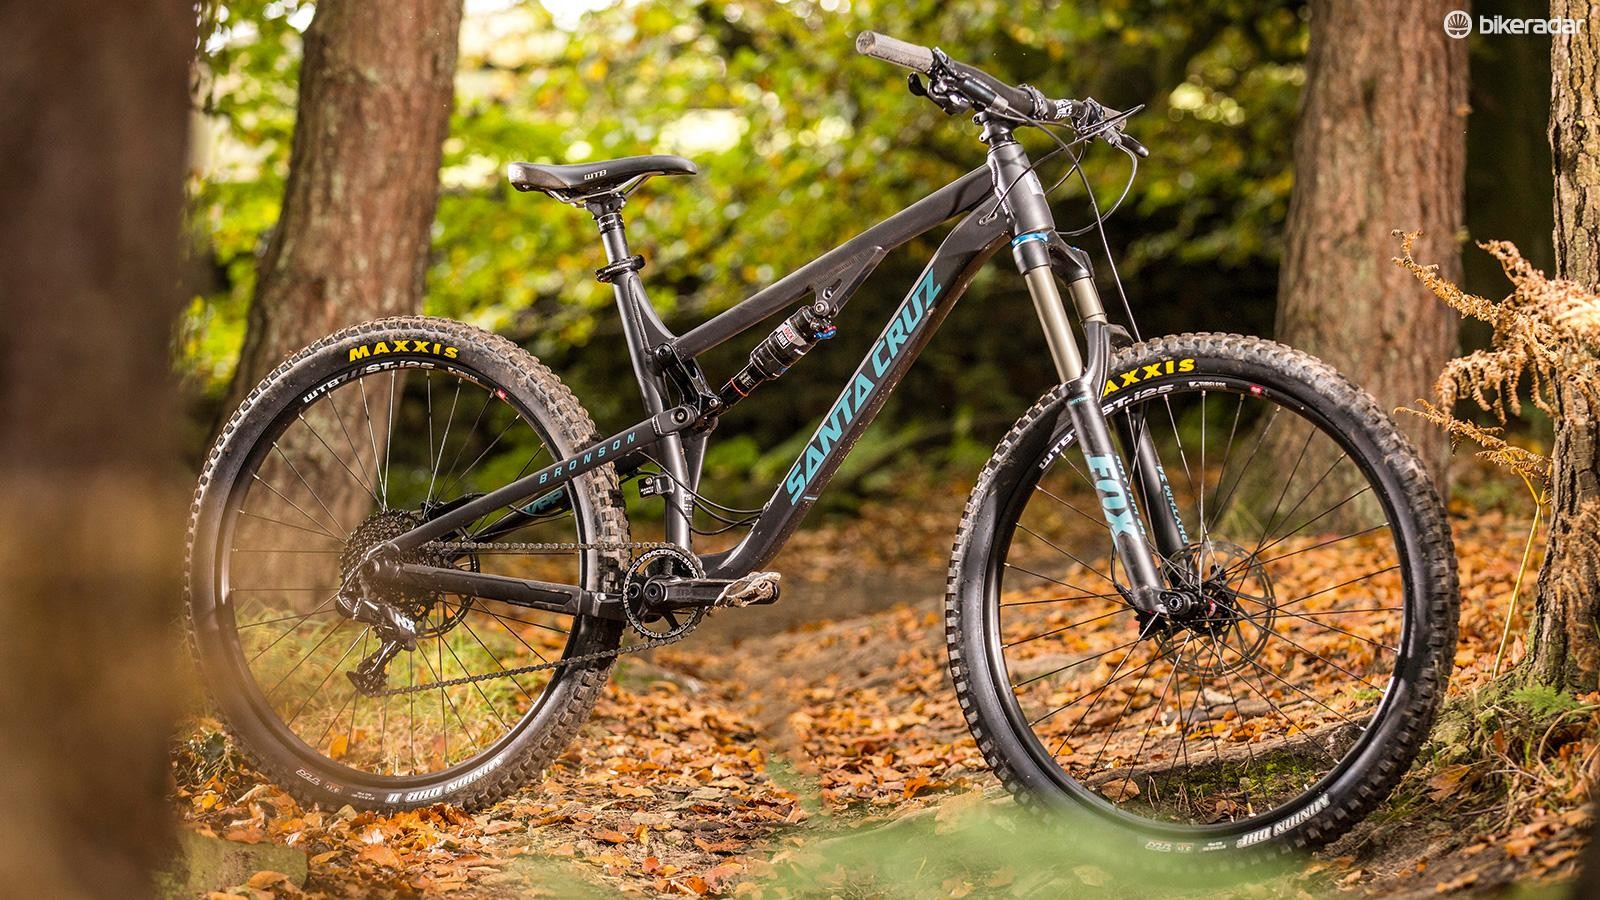 Santa Cruz's Bronson Alloy R1 AM